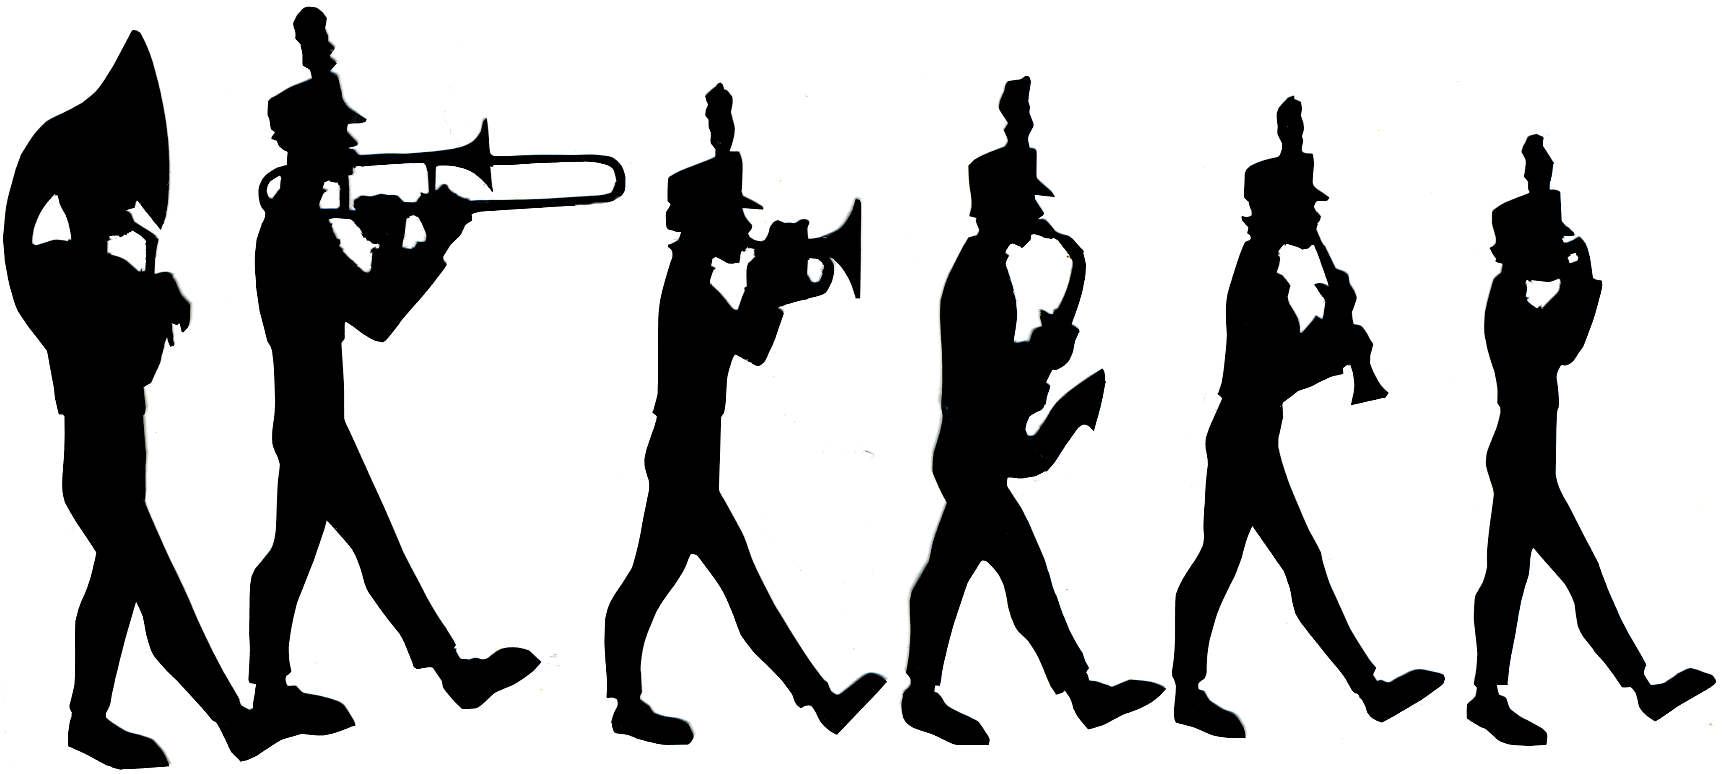 Marching Band Silhouette Clipart - Clipart Kid